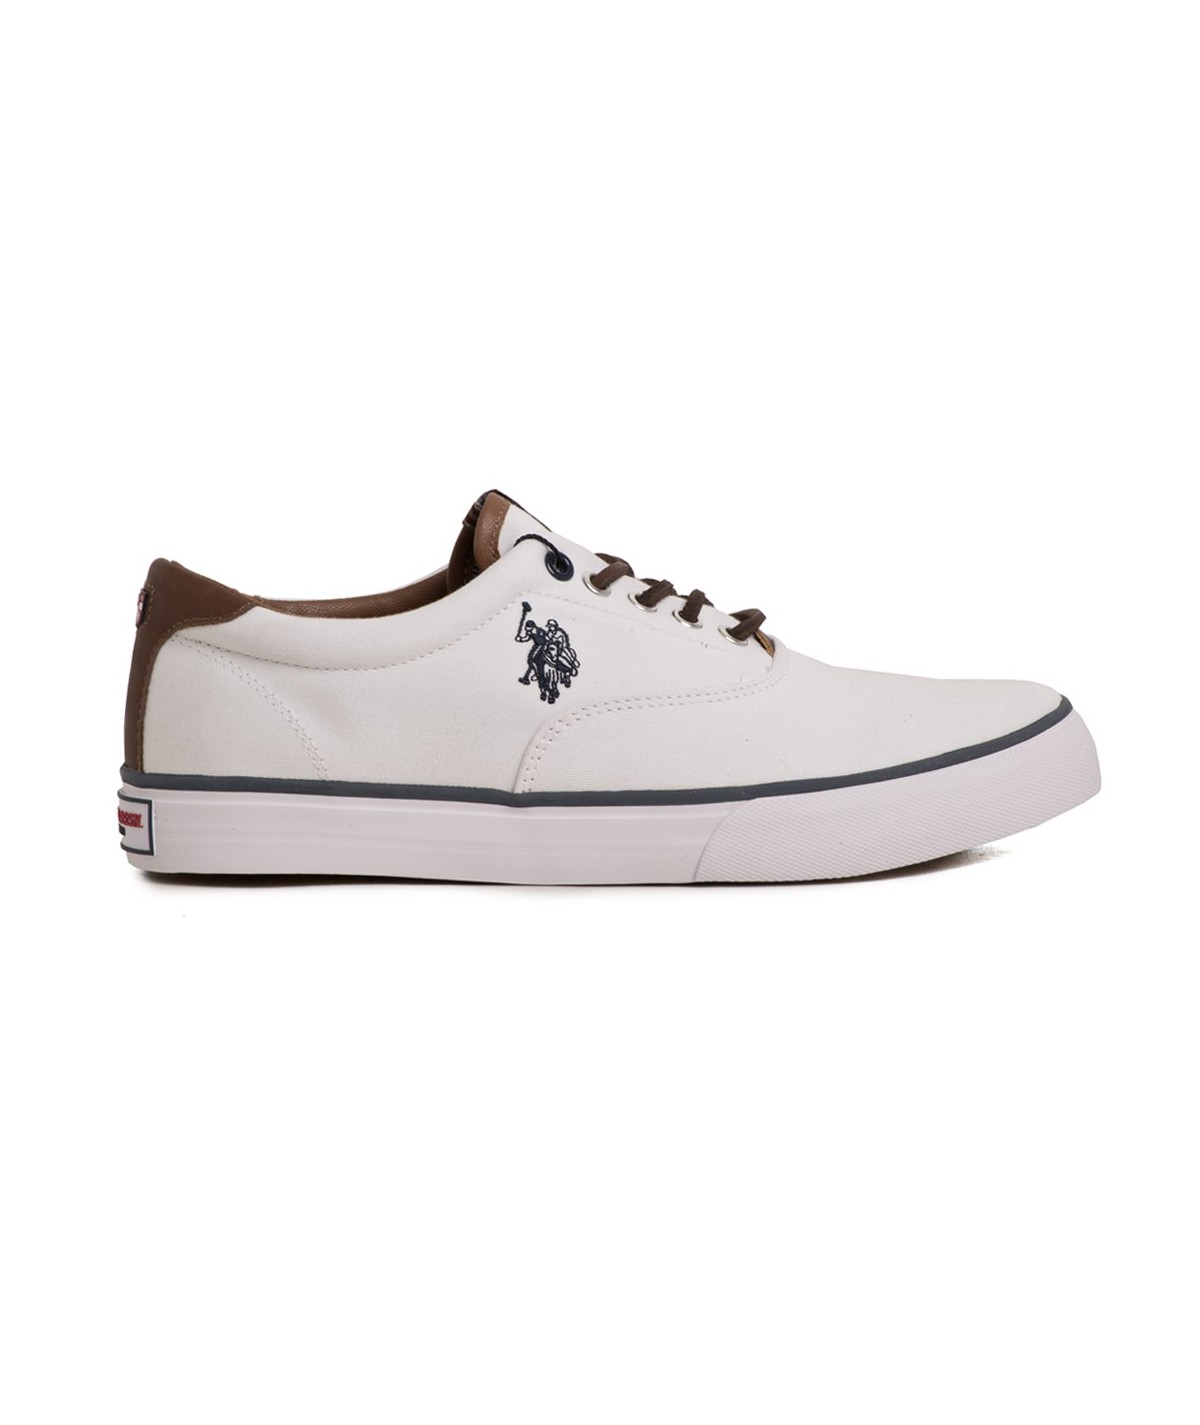 U.S. POLO ASSN. Sneakers Uomo